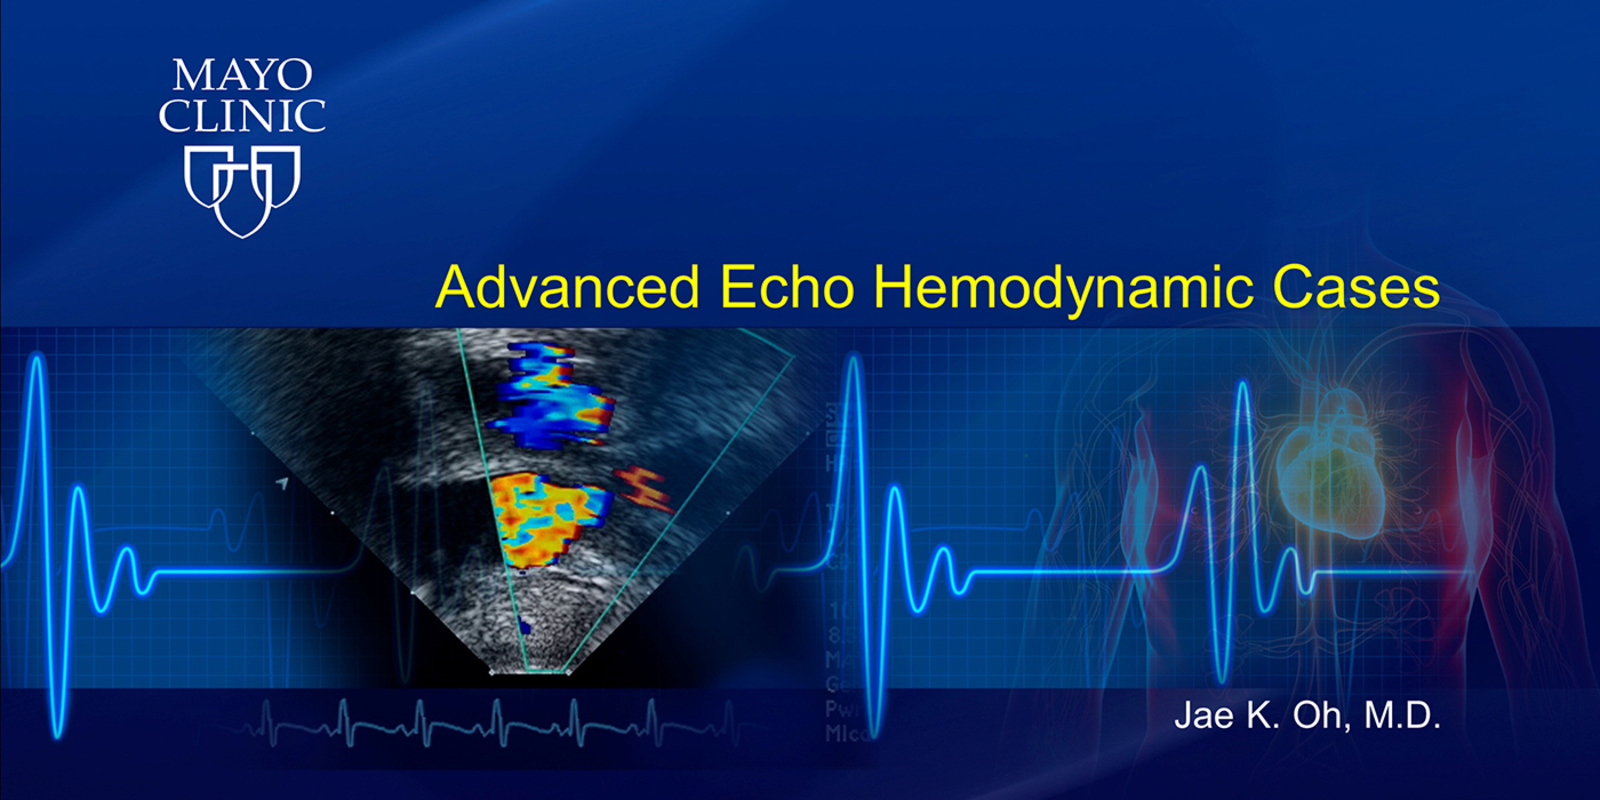 Advanced Echo Hemodynamic Cases